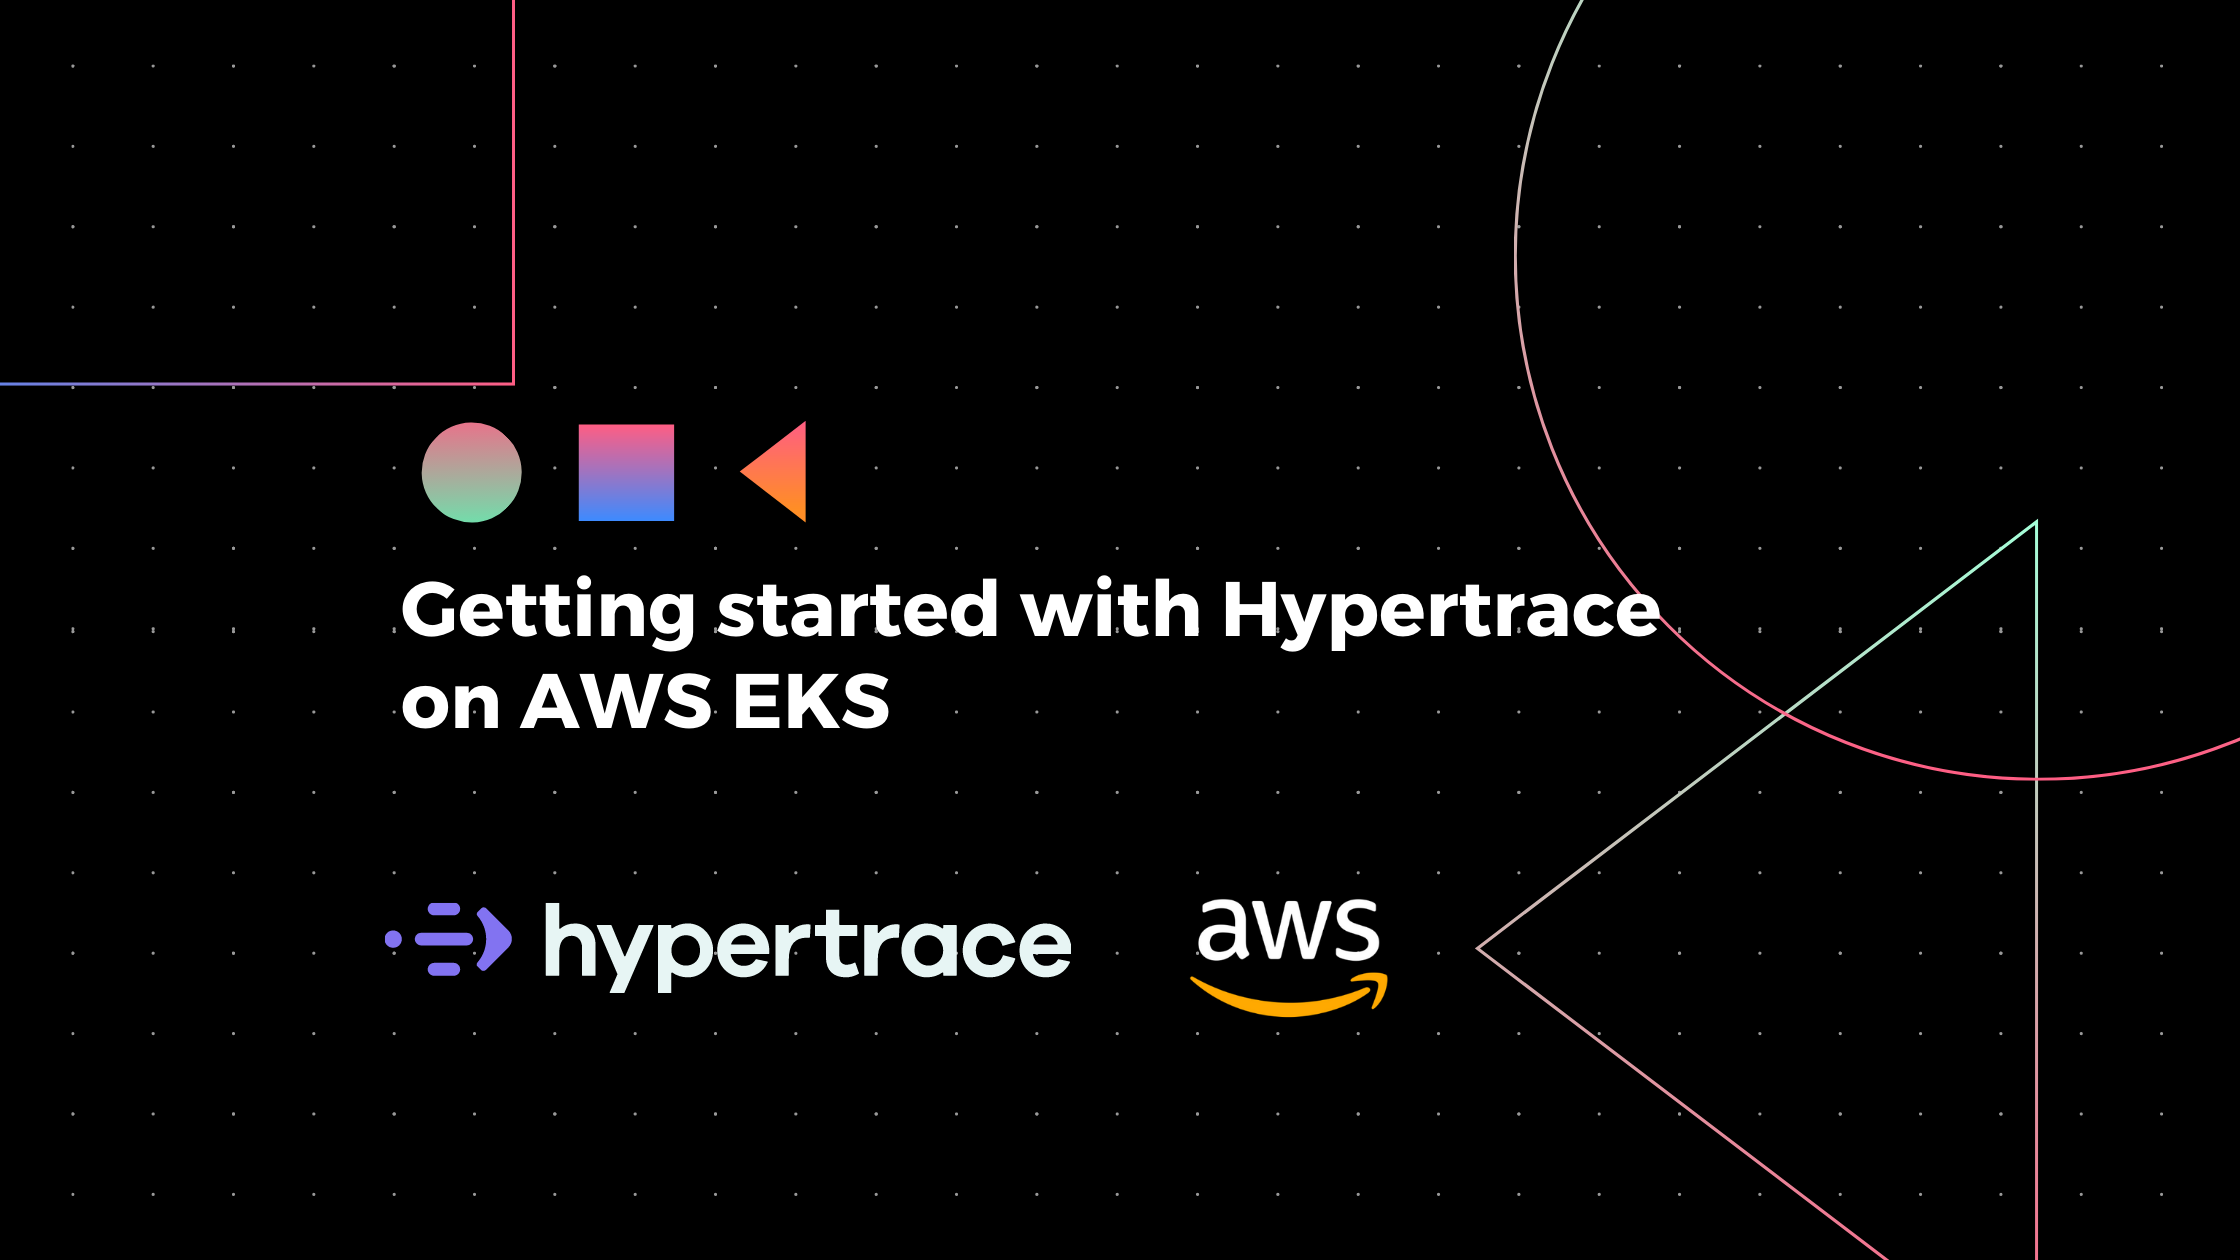 Getting started with Hypertrace on AWS EKS